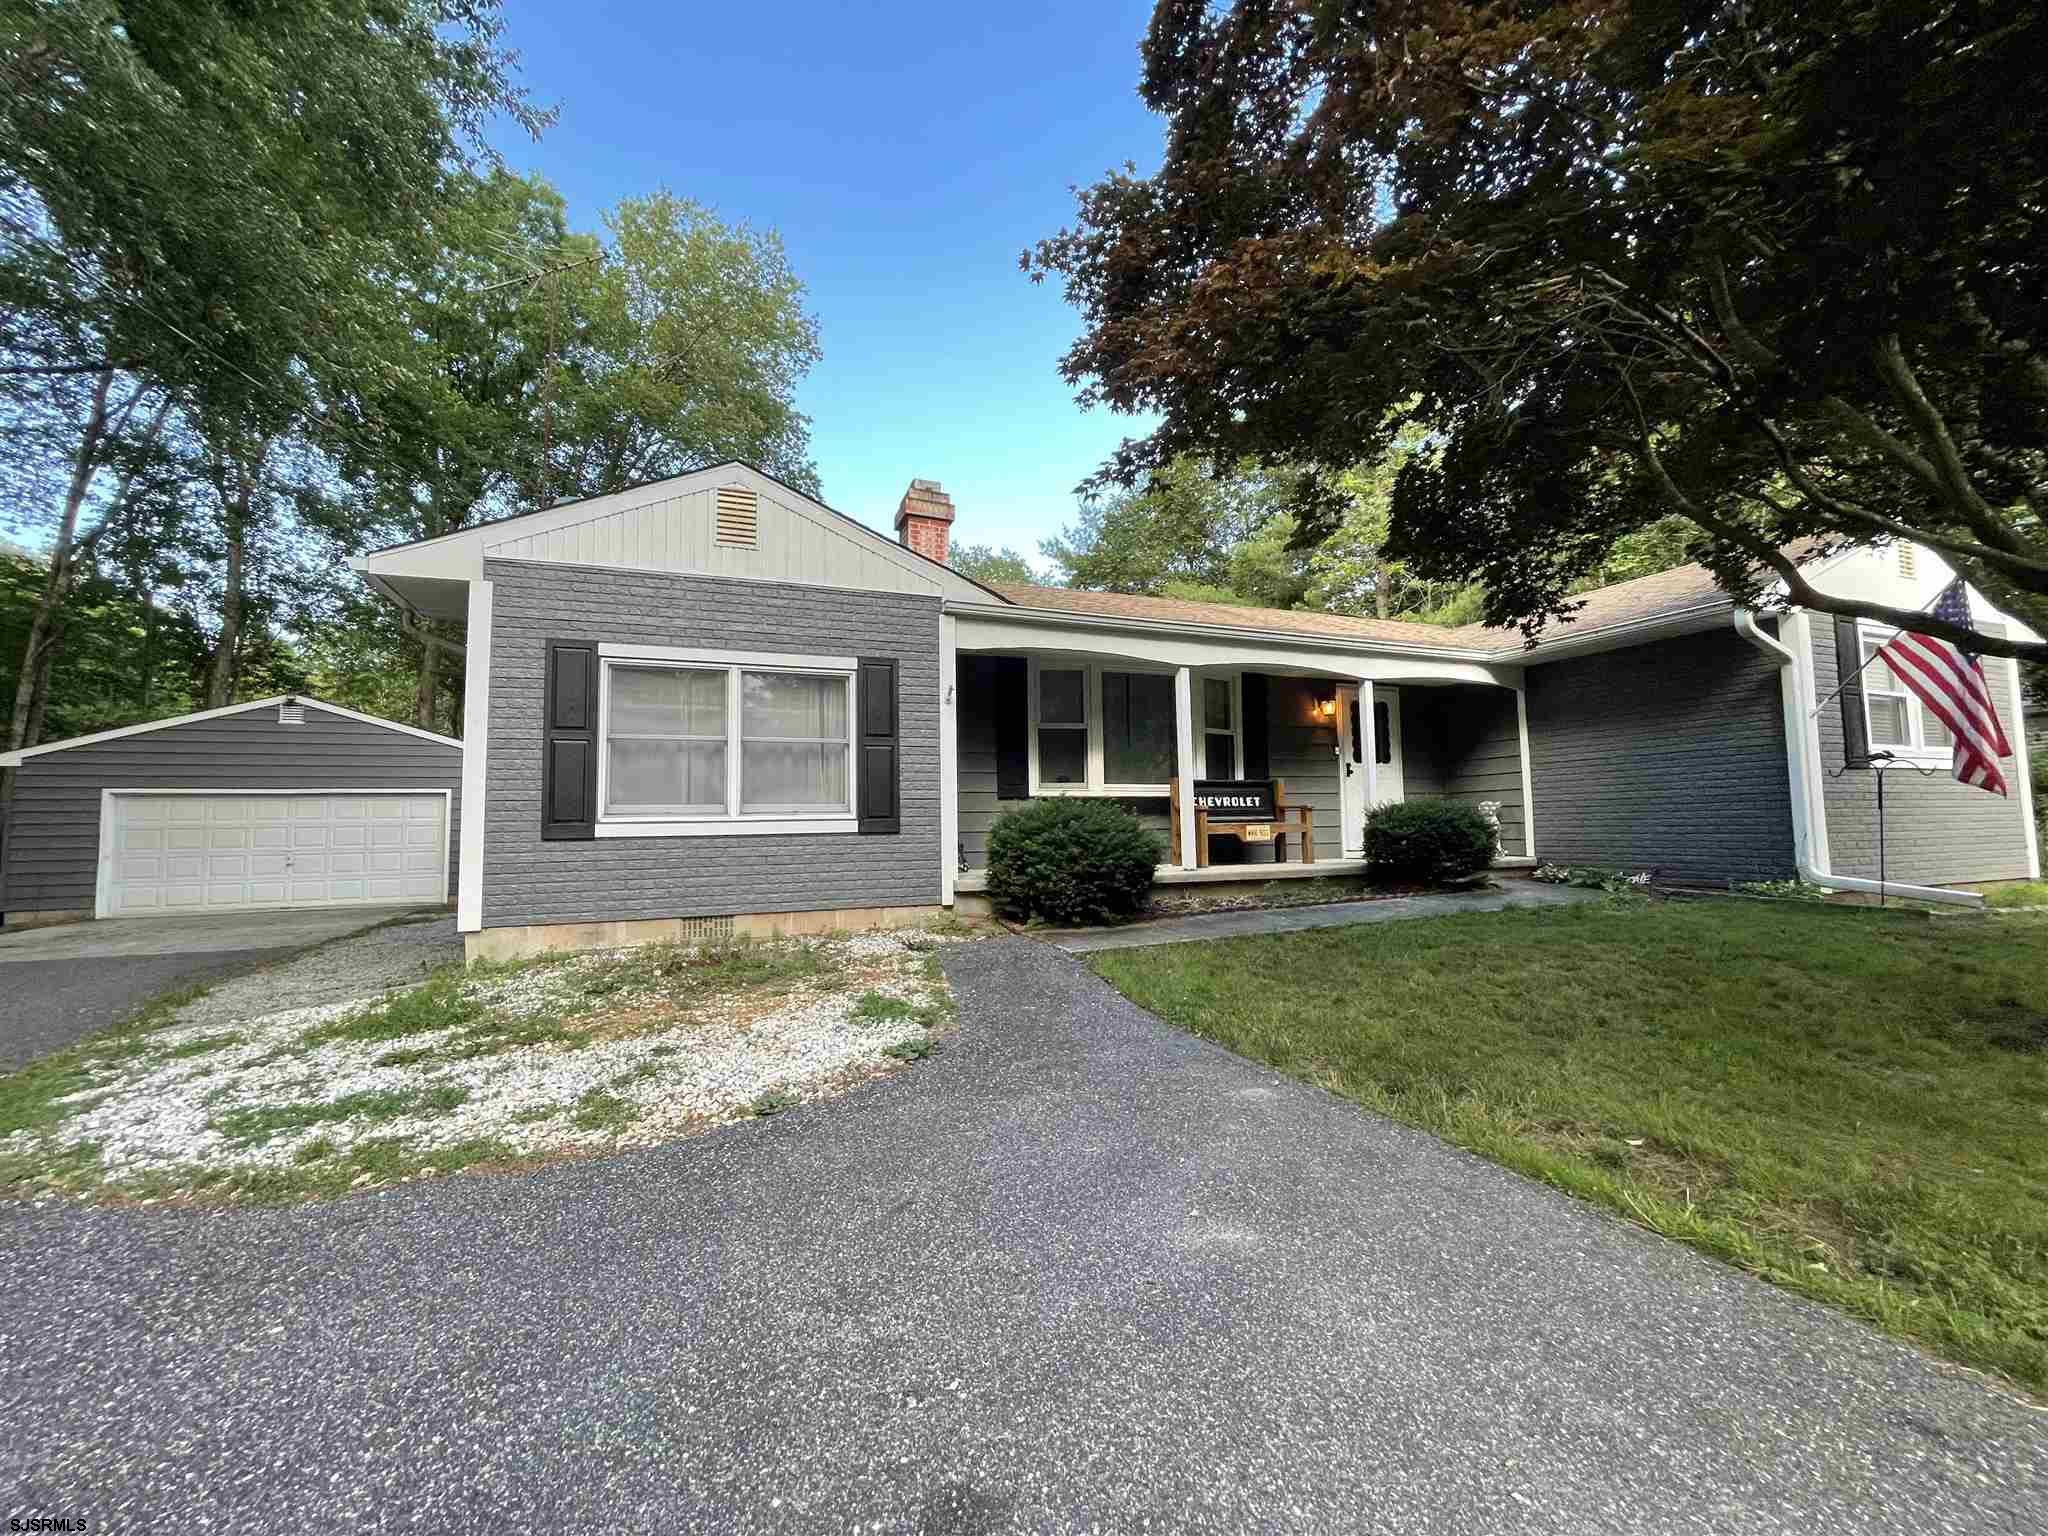 Beautifully Maintained 3bd 2ba Ranch on 2.5 acres with an Open Living room, dining room, and kitchen